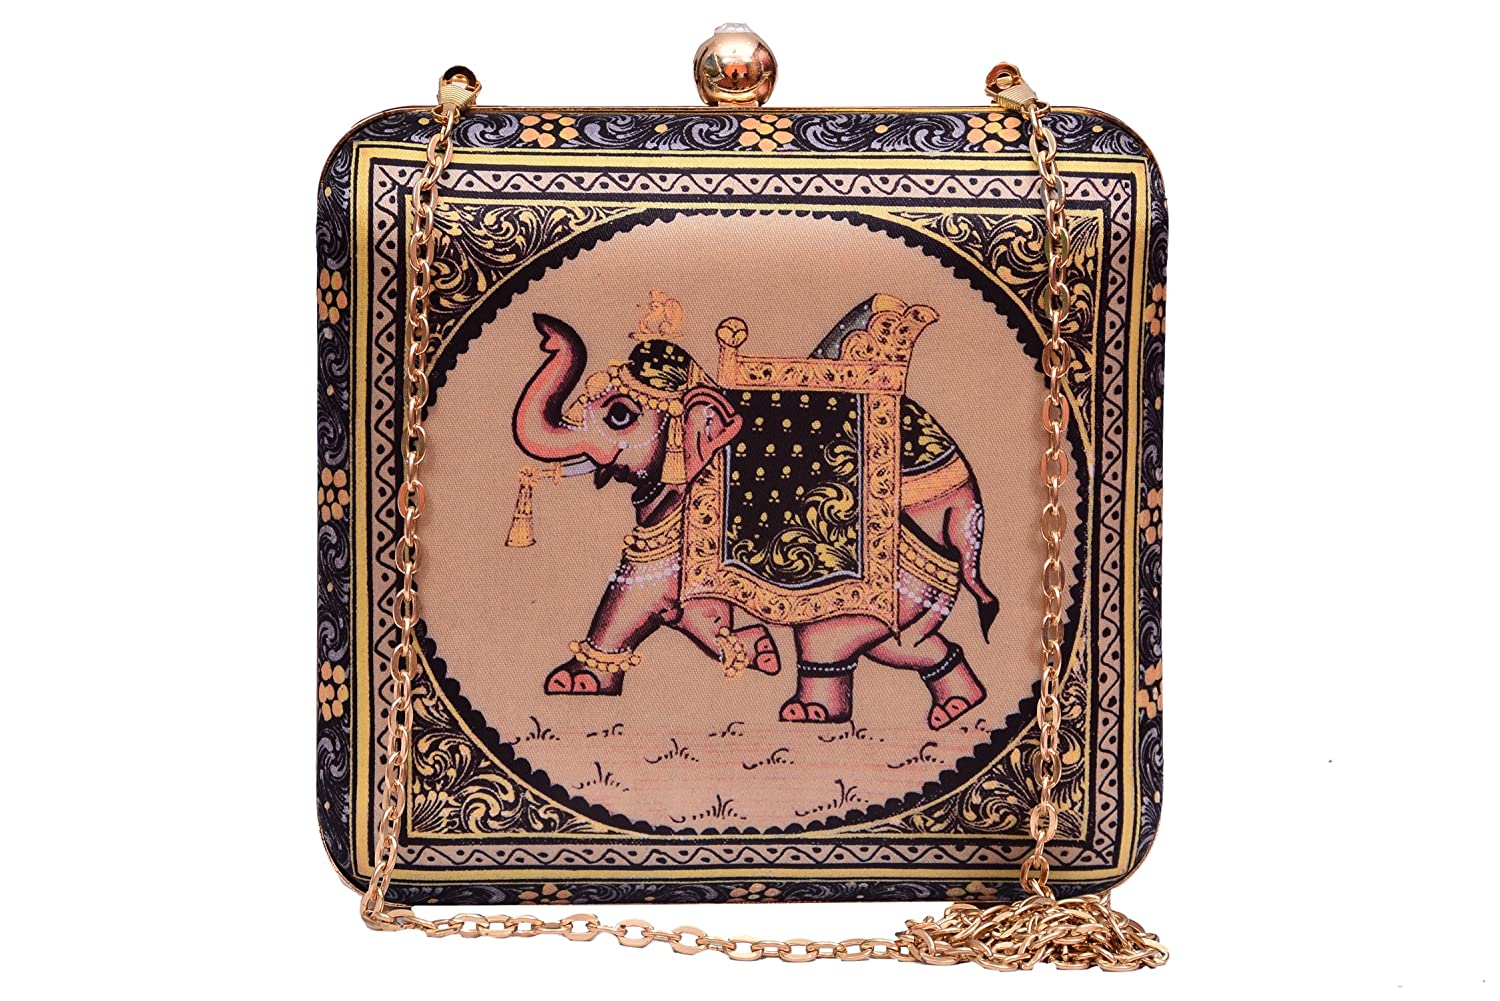 beautiful black clutch with golden work.